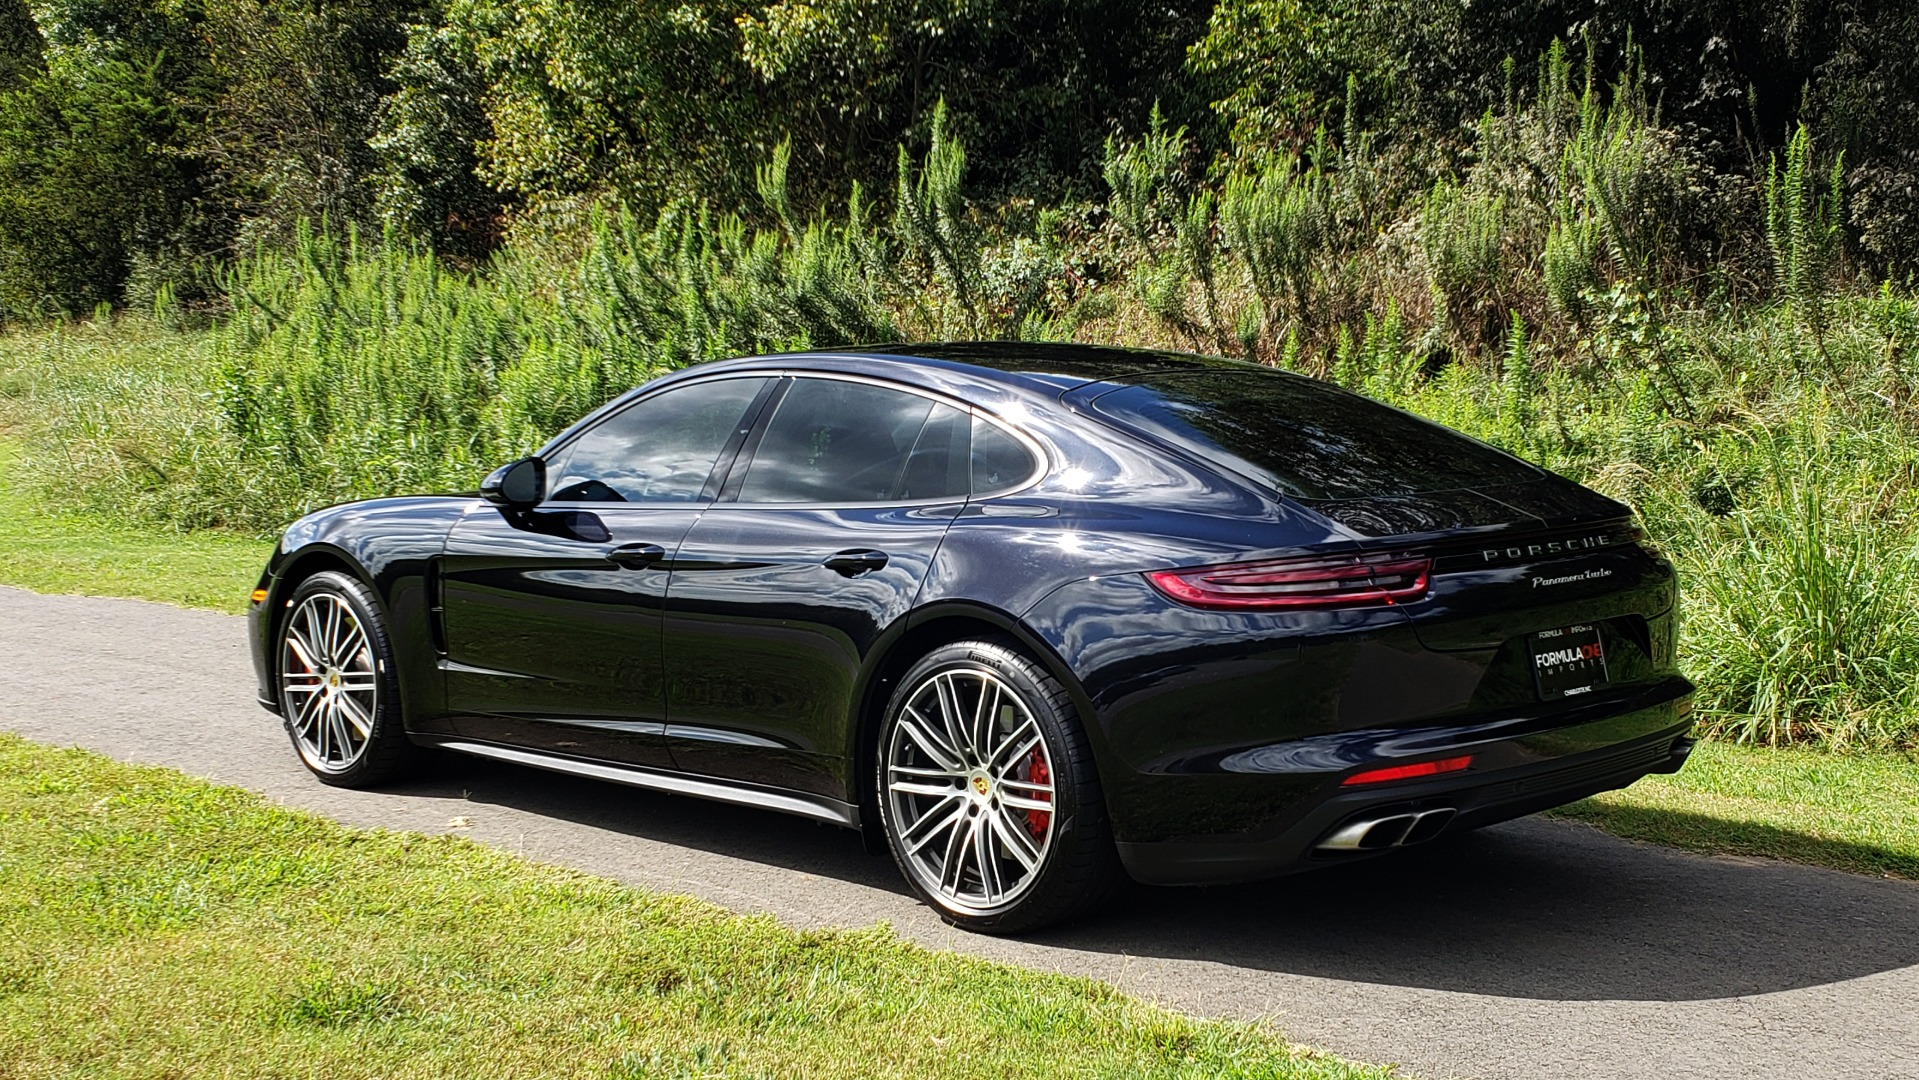 Used 2017 Porsche PANAMERA TURBO AWD / 4.0L V8 / AUTO / NAV / BOSE / REARVIEW / 21IN WHEELS for sale $98,995 at Formula Imports in Charlotte NC 28227 5